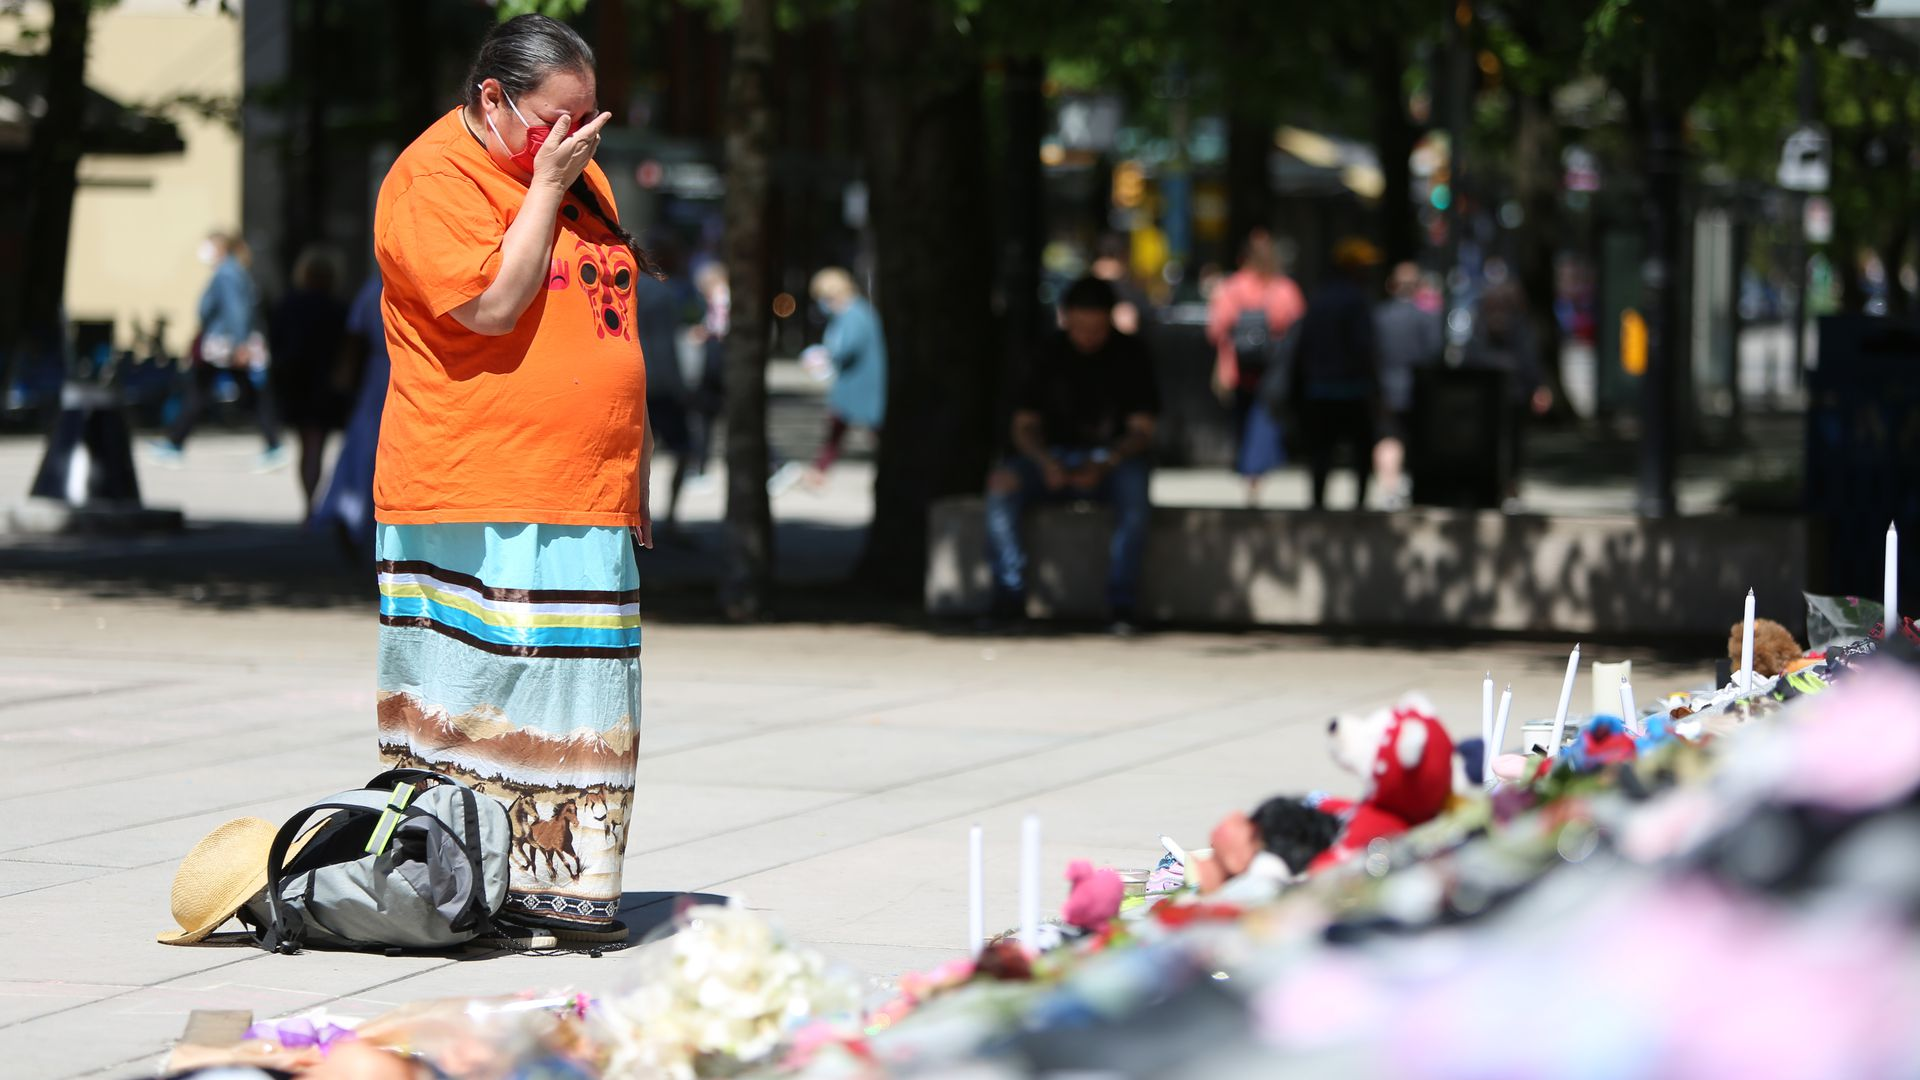 A woman mourns beside 215 pairs of children's shoes outside Vancouver Art Gallery during a memorial in Vancouver, British Columbia, Canada, Saturday, after a mass grave of Indigenous children was found. Photo: Mert Alper Dervis/Anadolu Agency via Getty Images